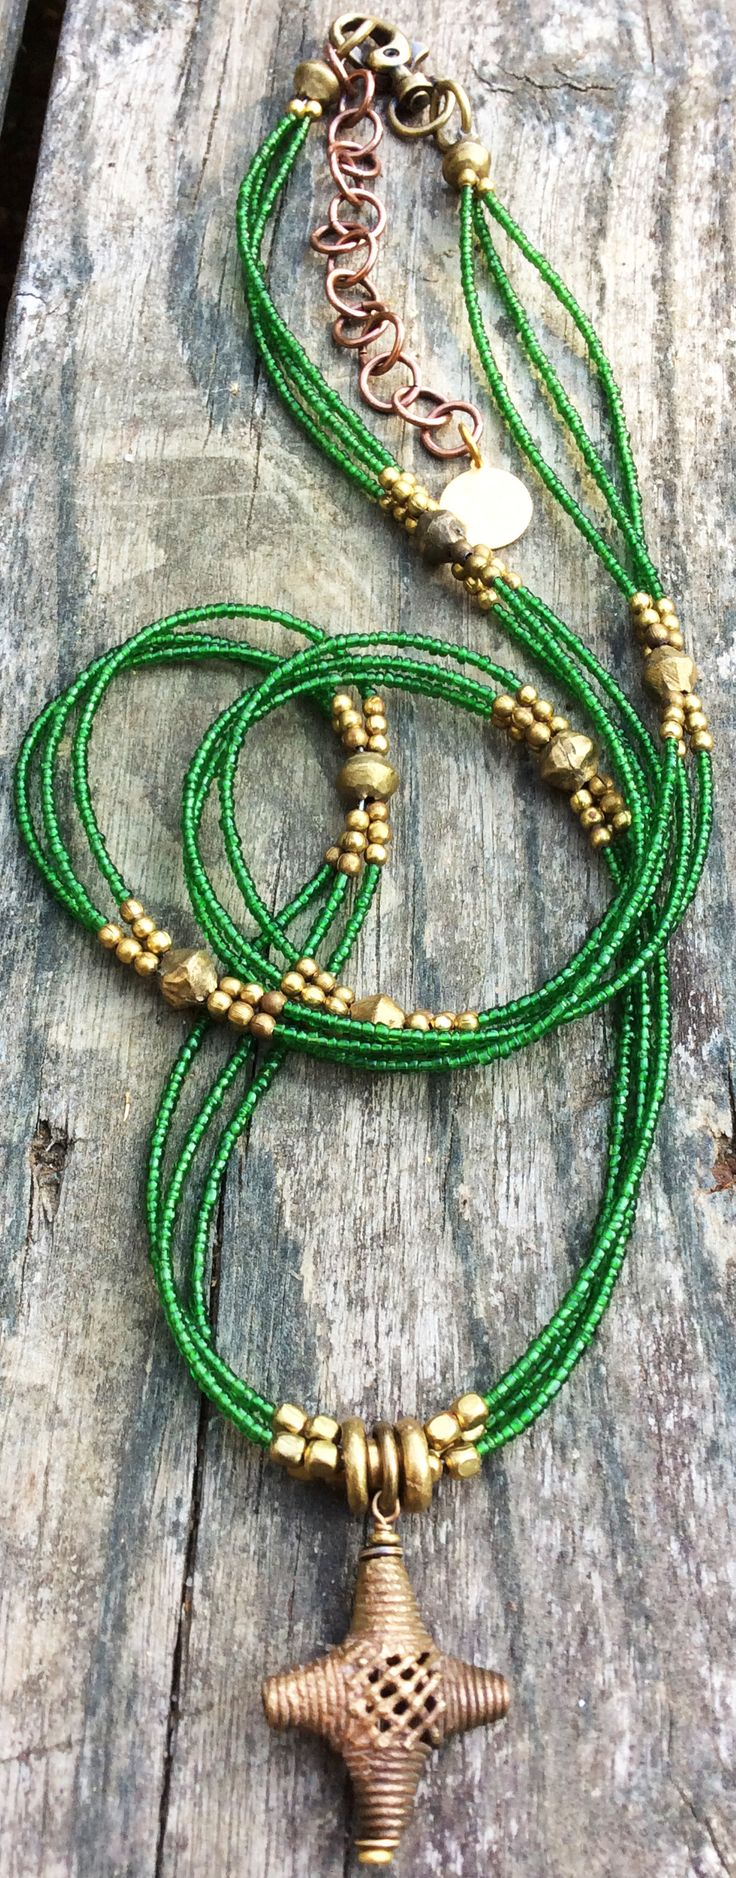 Long Green Glass and African Brass Necklace $175 contact me to purchase kelly@xogallery.com I could create this style in any color!